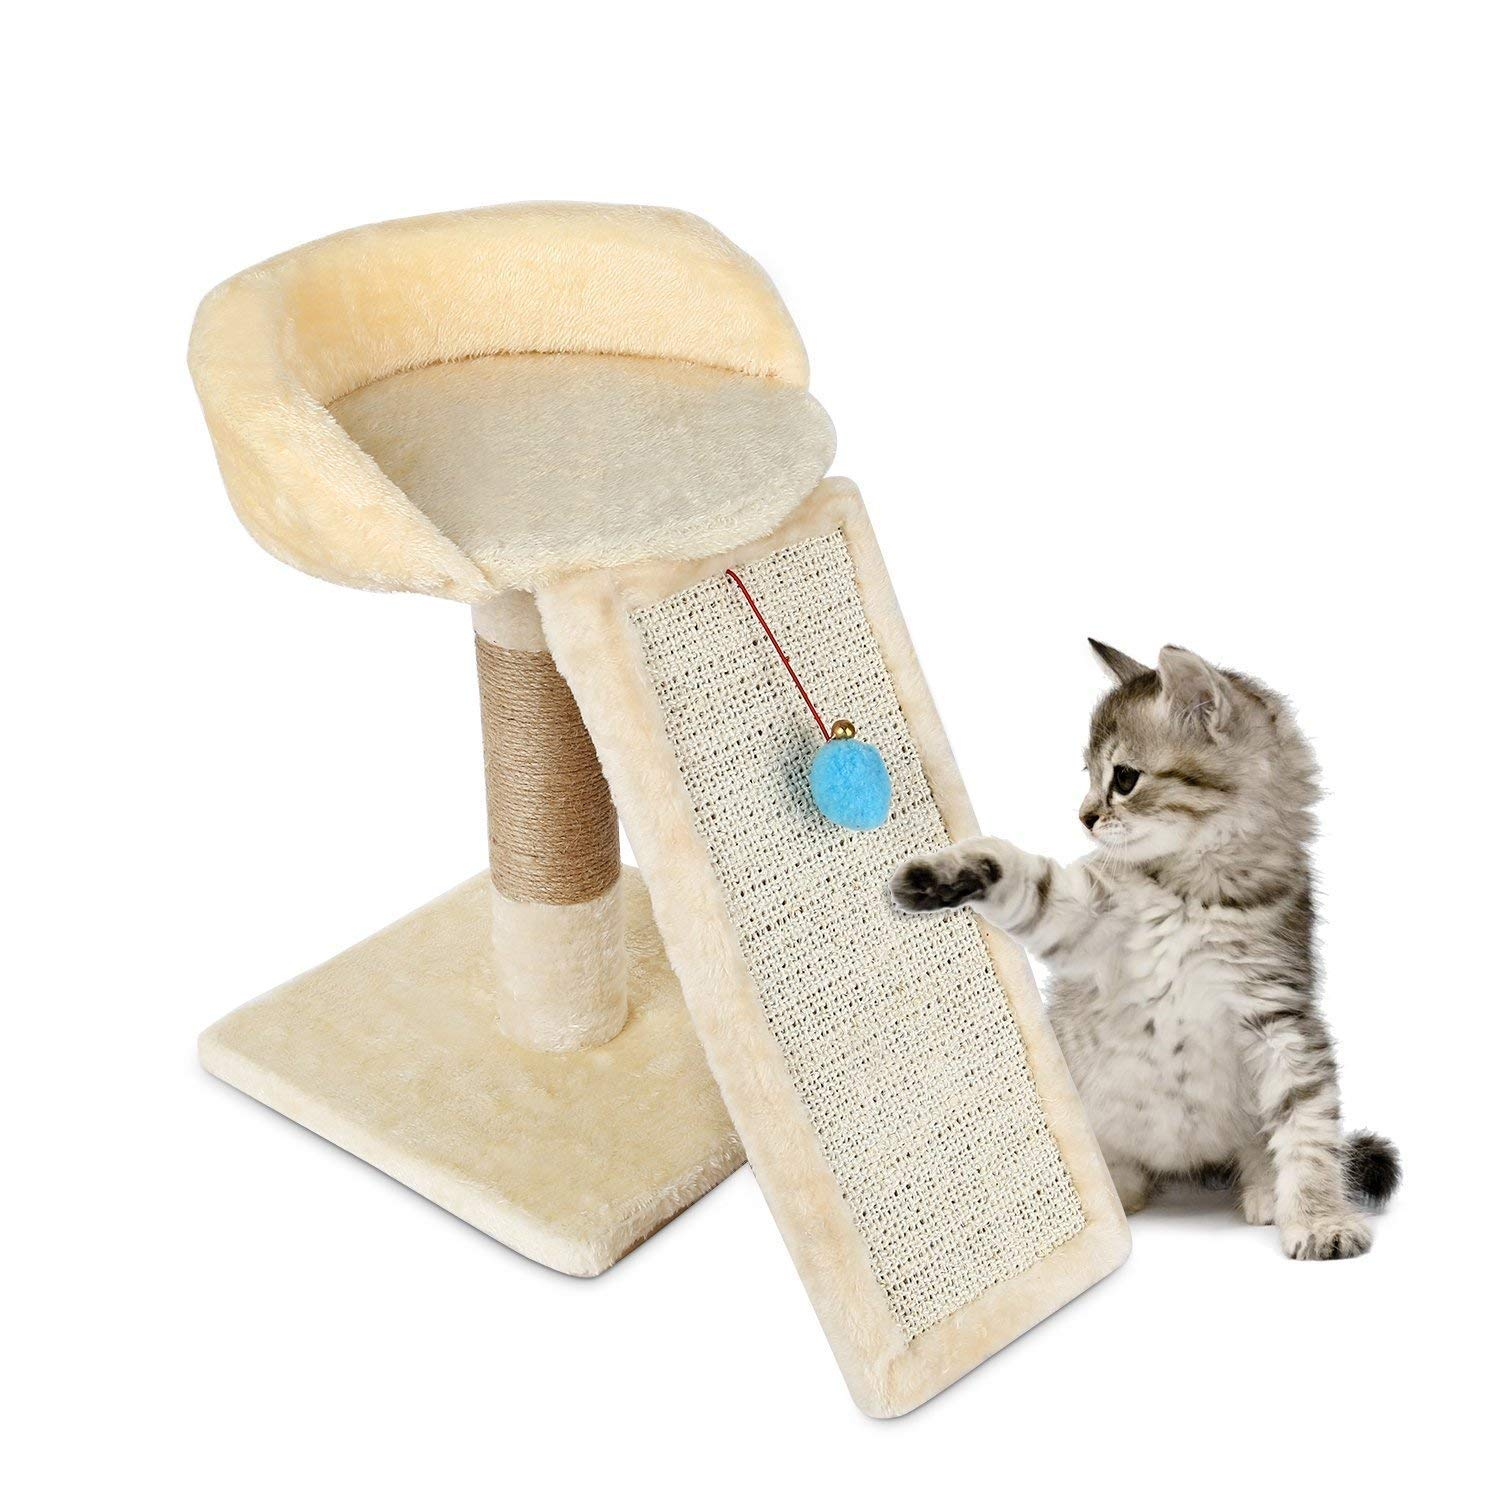 Happystore999 Cat Kitten Scratching Post Tree, Climbing Frame Toy with Ball Bell Toy Cat Scratching Posts Cat Scratch Board Jumping Training Toy